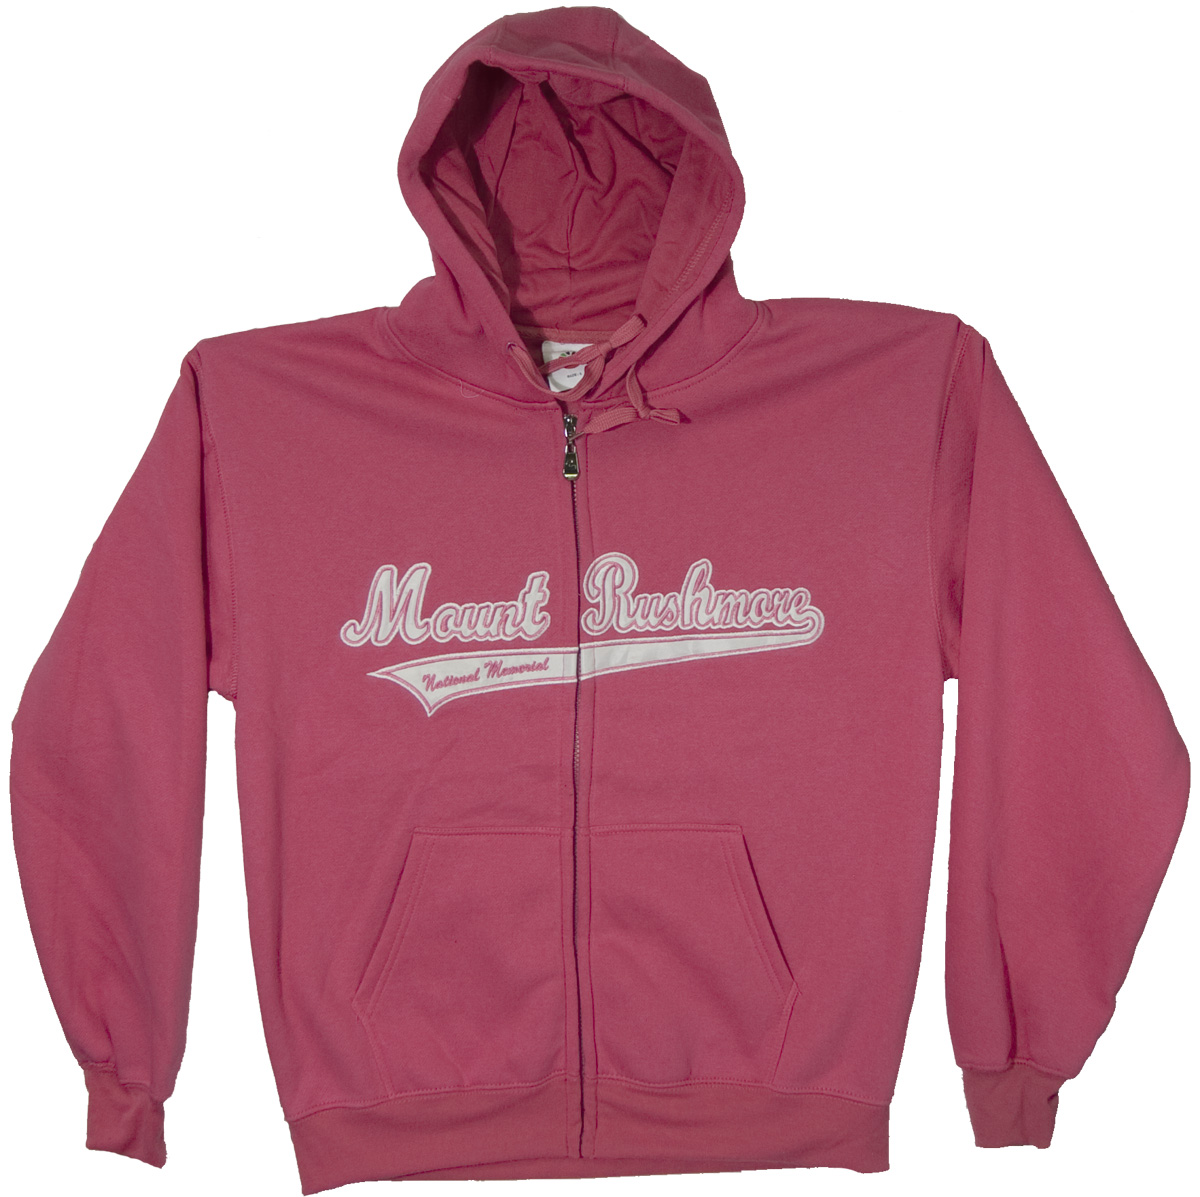 (S) MOUNT RUSHMORE HOT PINK APPLIQUE ZIP HOODY